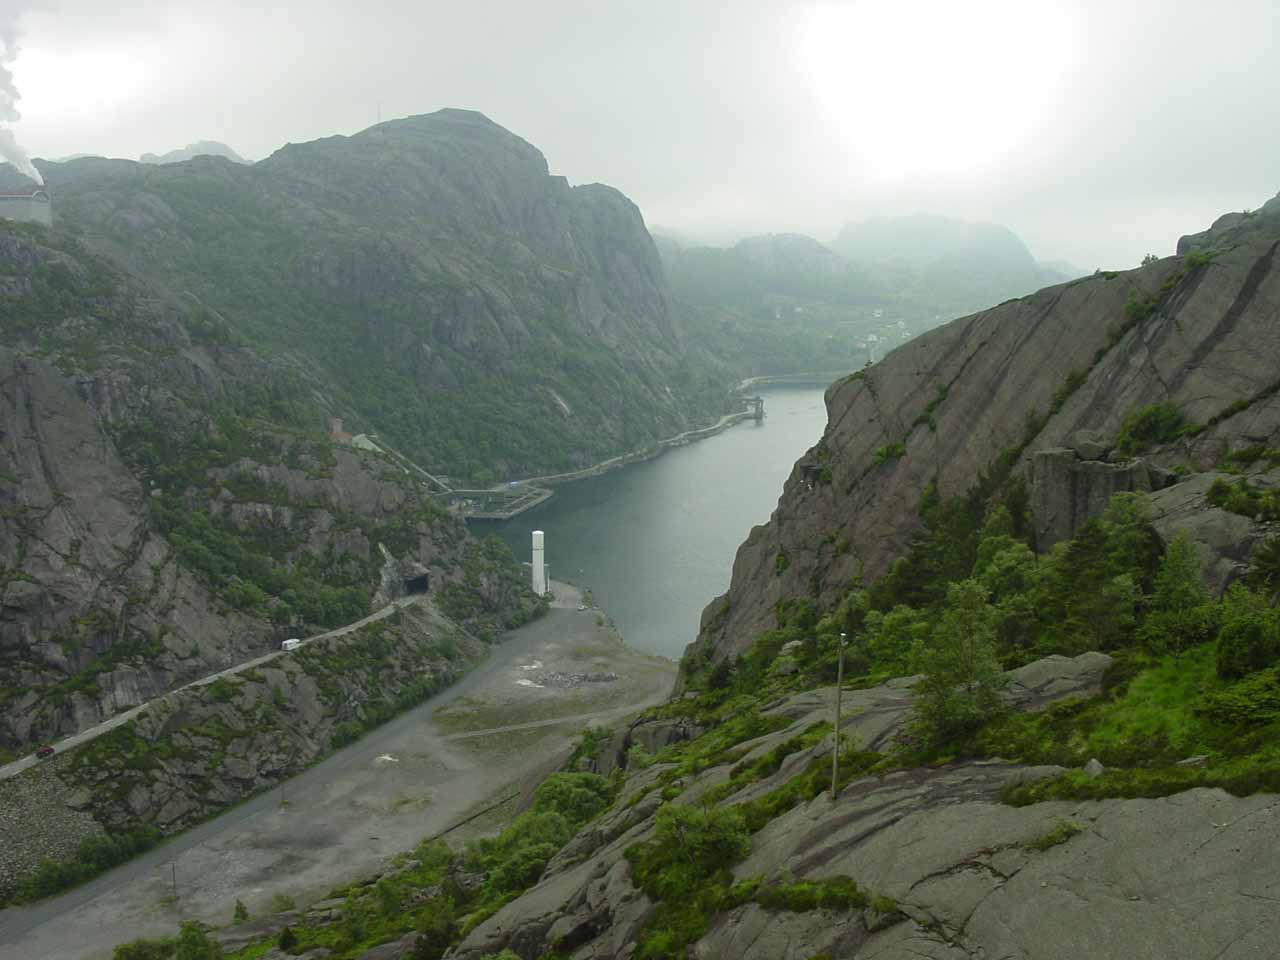 The scenic Jøssingfjorden was nearly a three-hour drive to the west of Kristiansand, but we were very glad to have made the detour because the vertical cliffs were dramatic